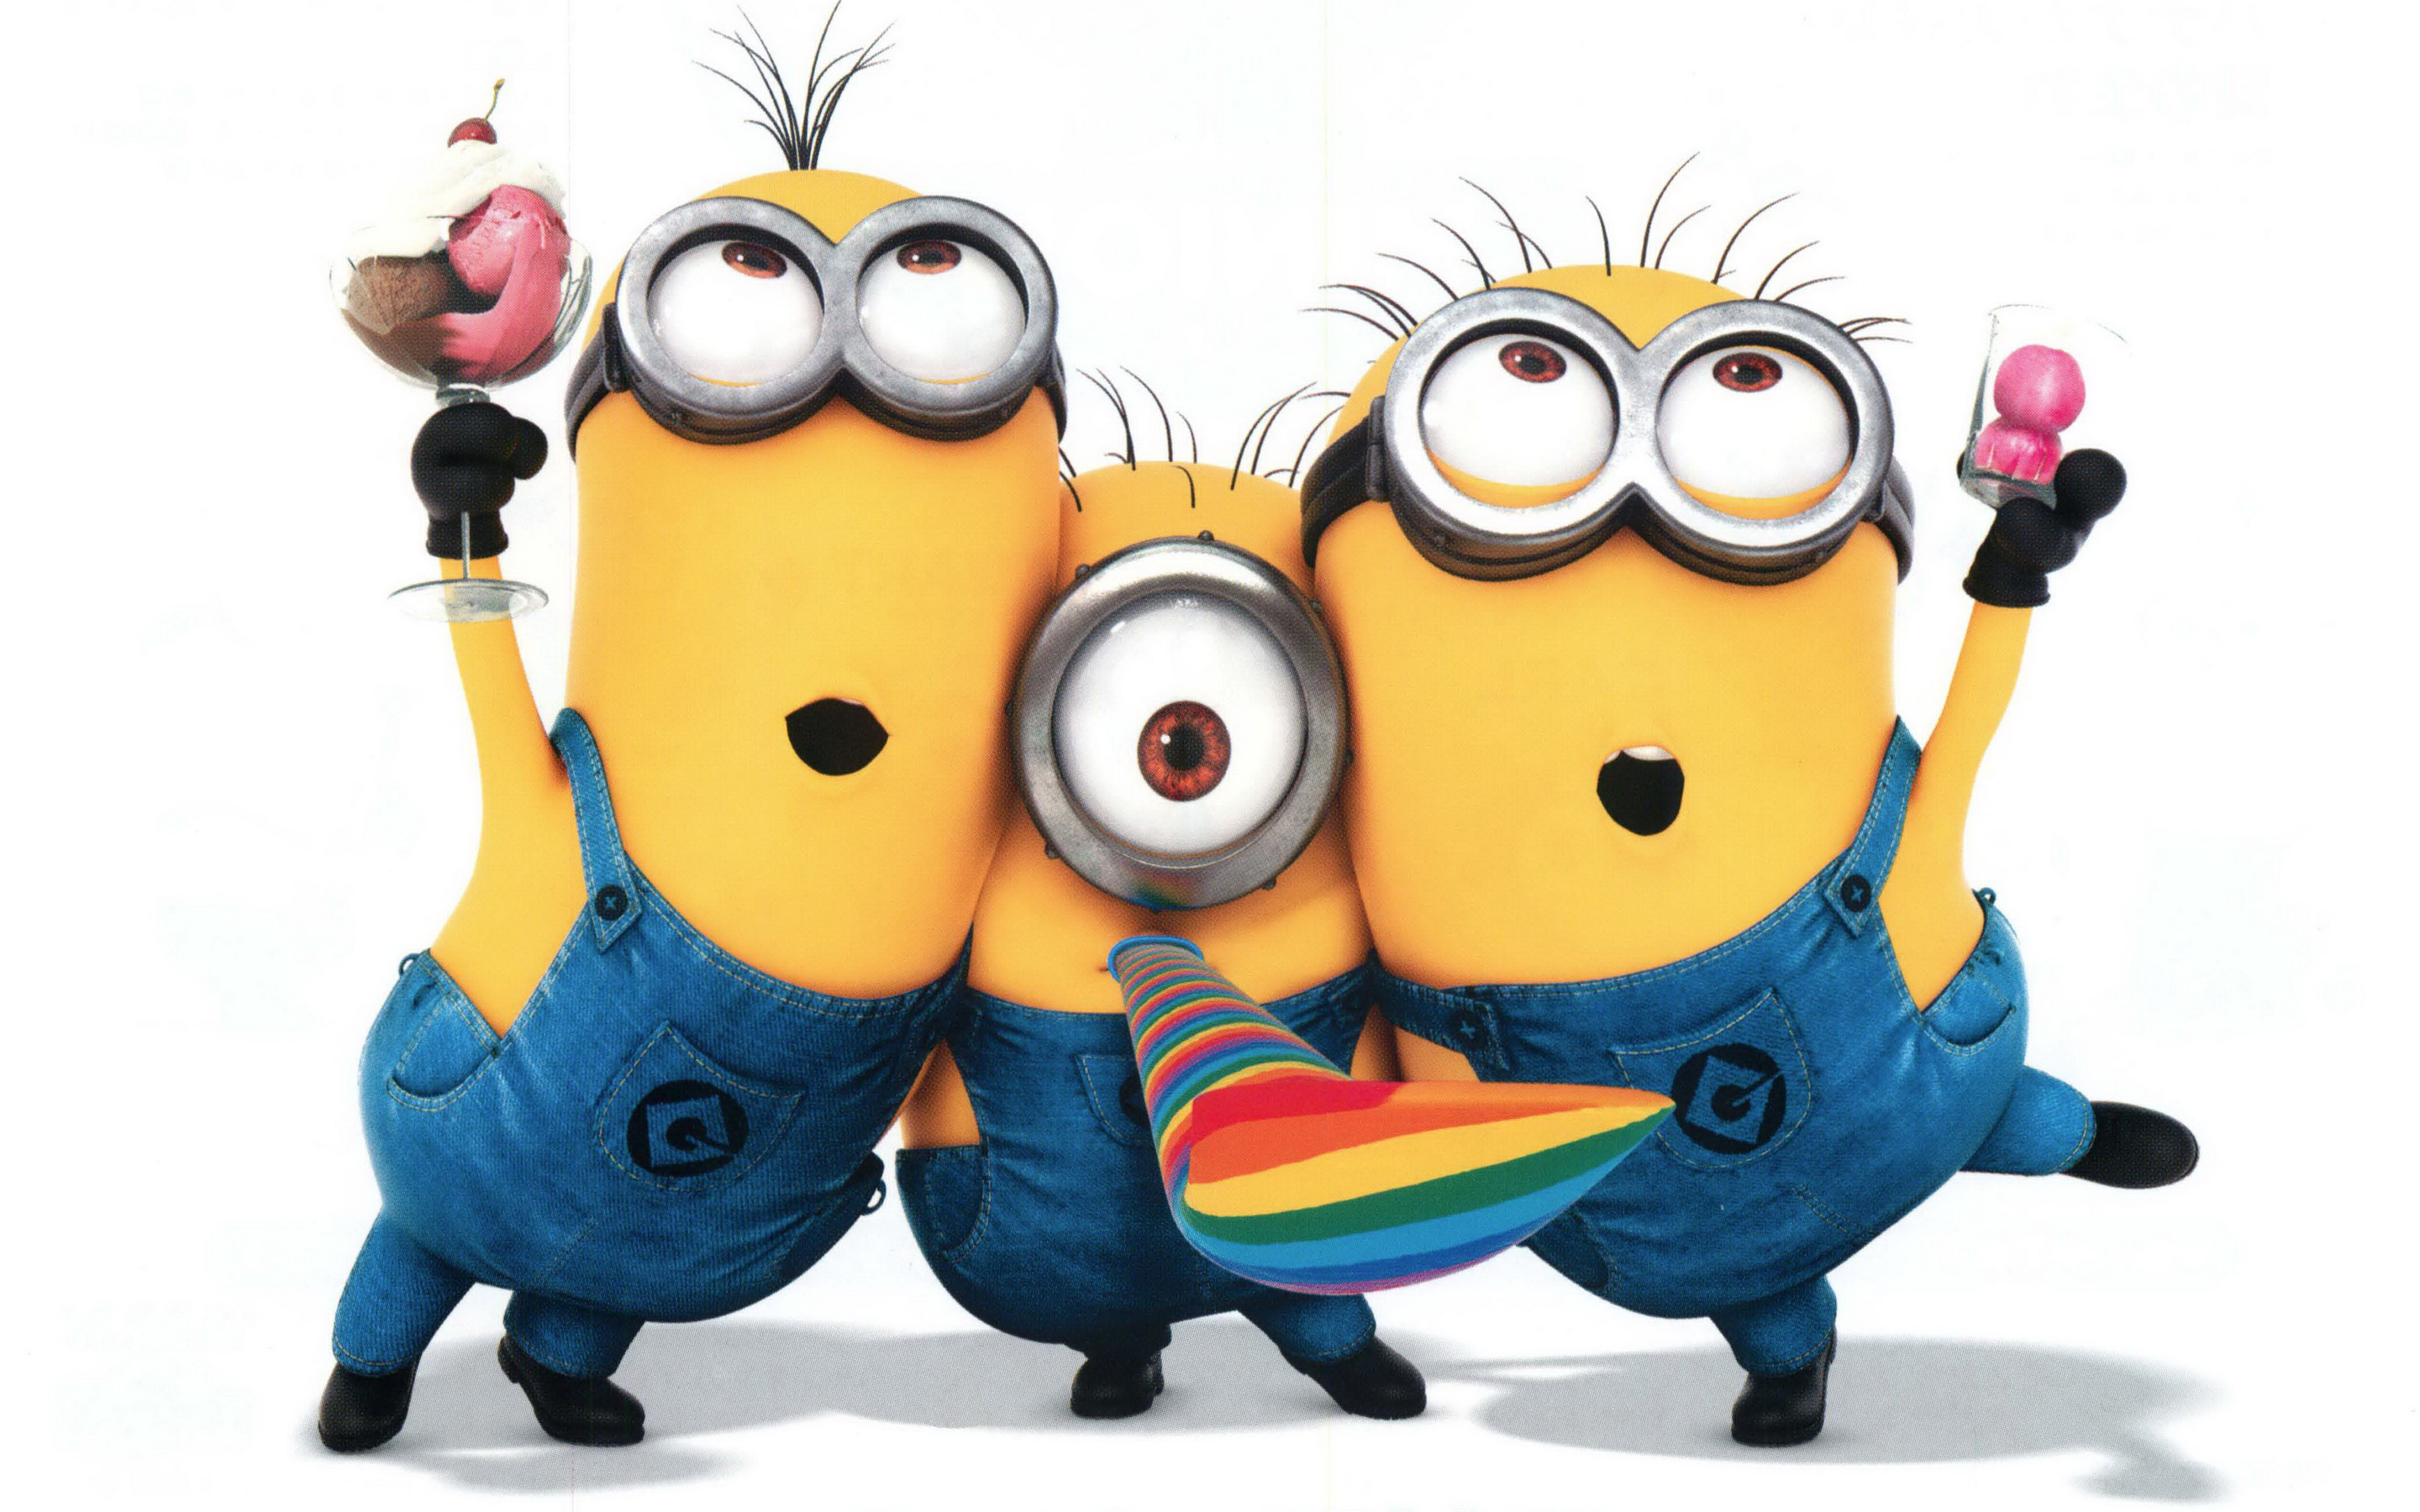 Cute Minion Wallpapers HD for Desktop 25 2880x1800